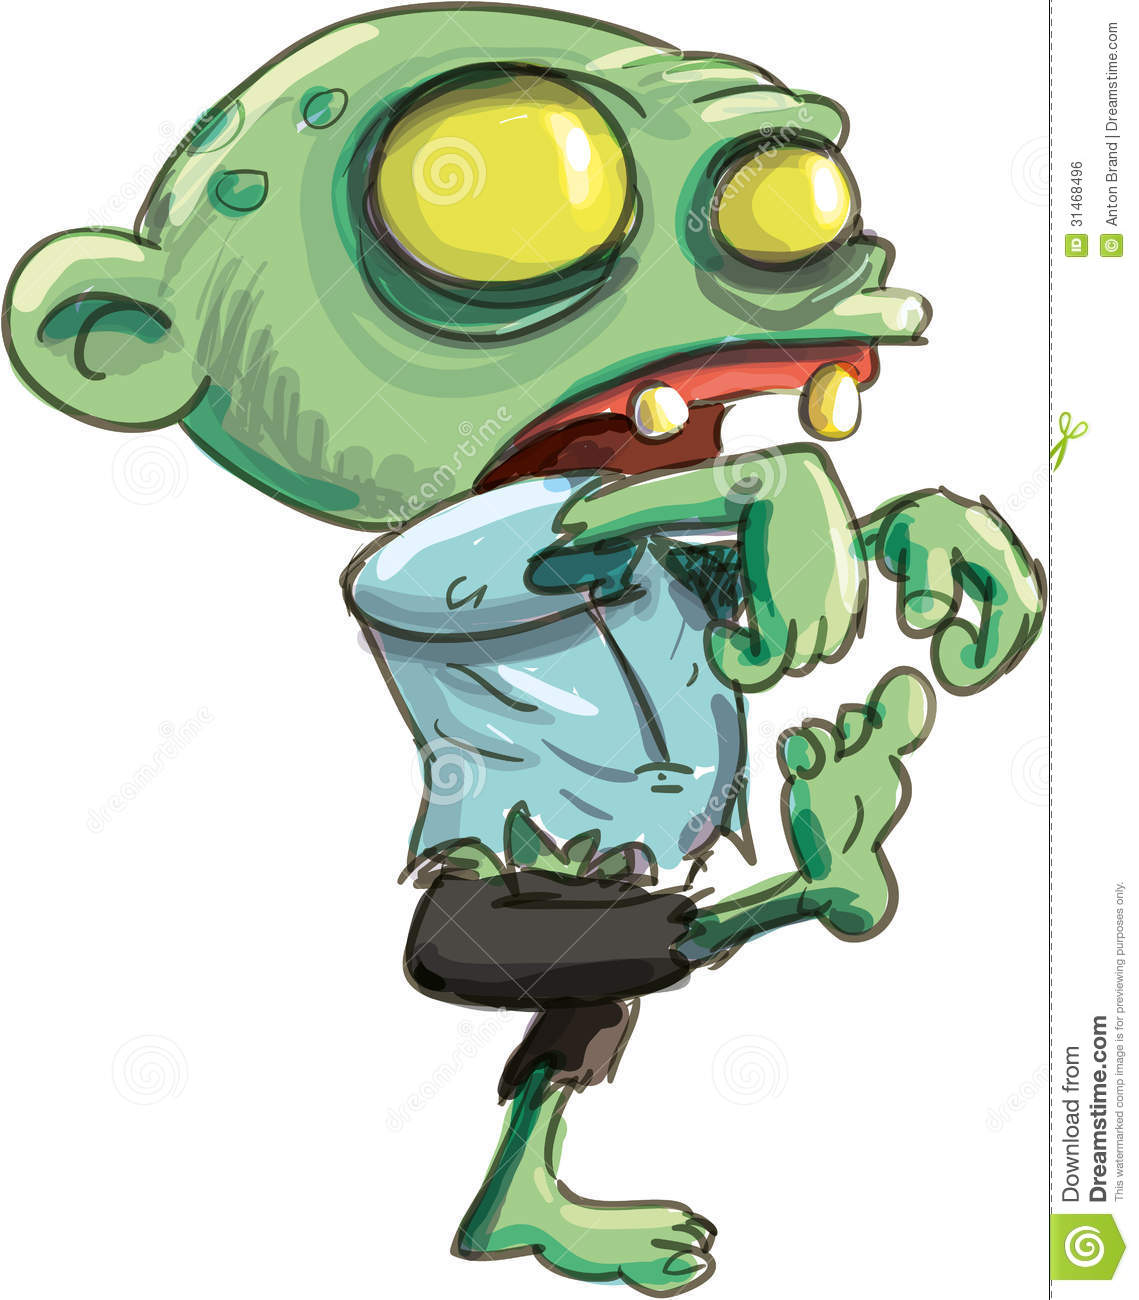 Zombie clipart green Cute of of zombie cute